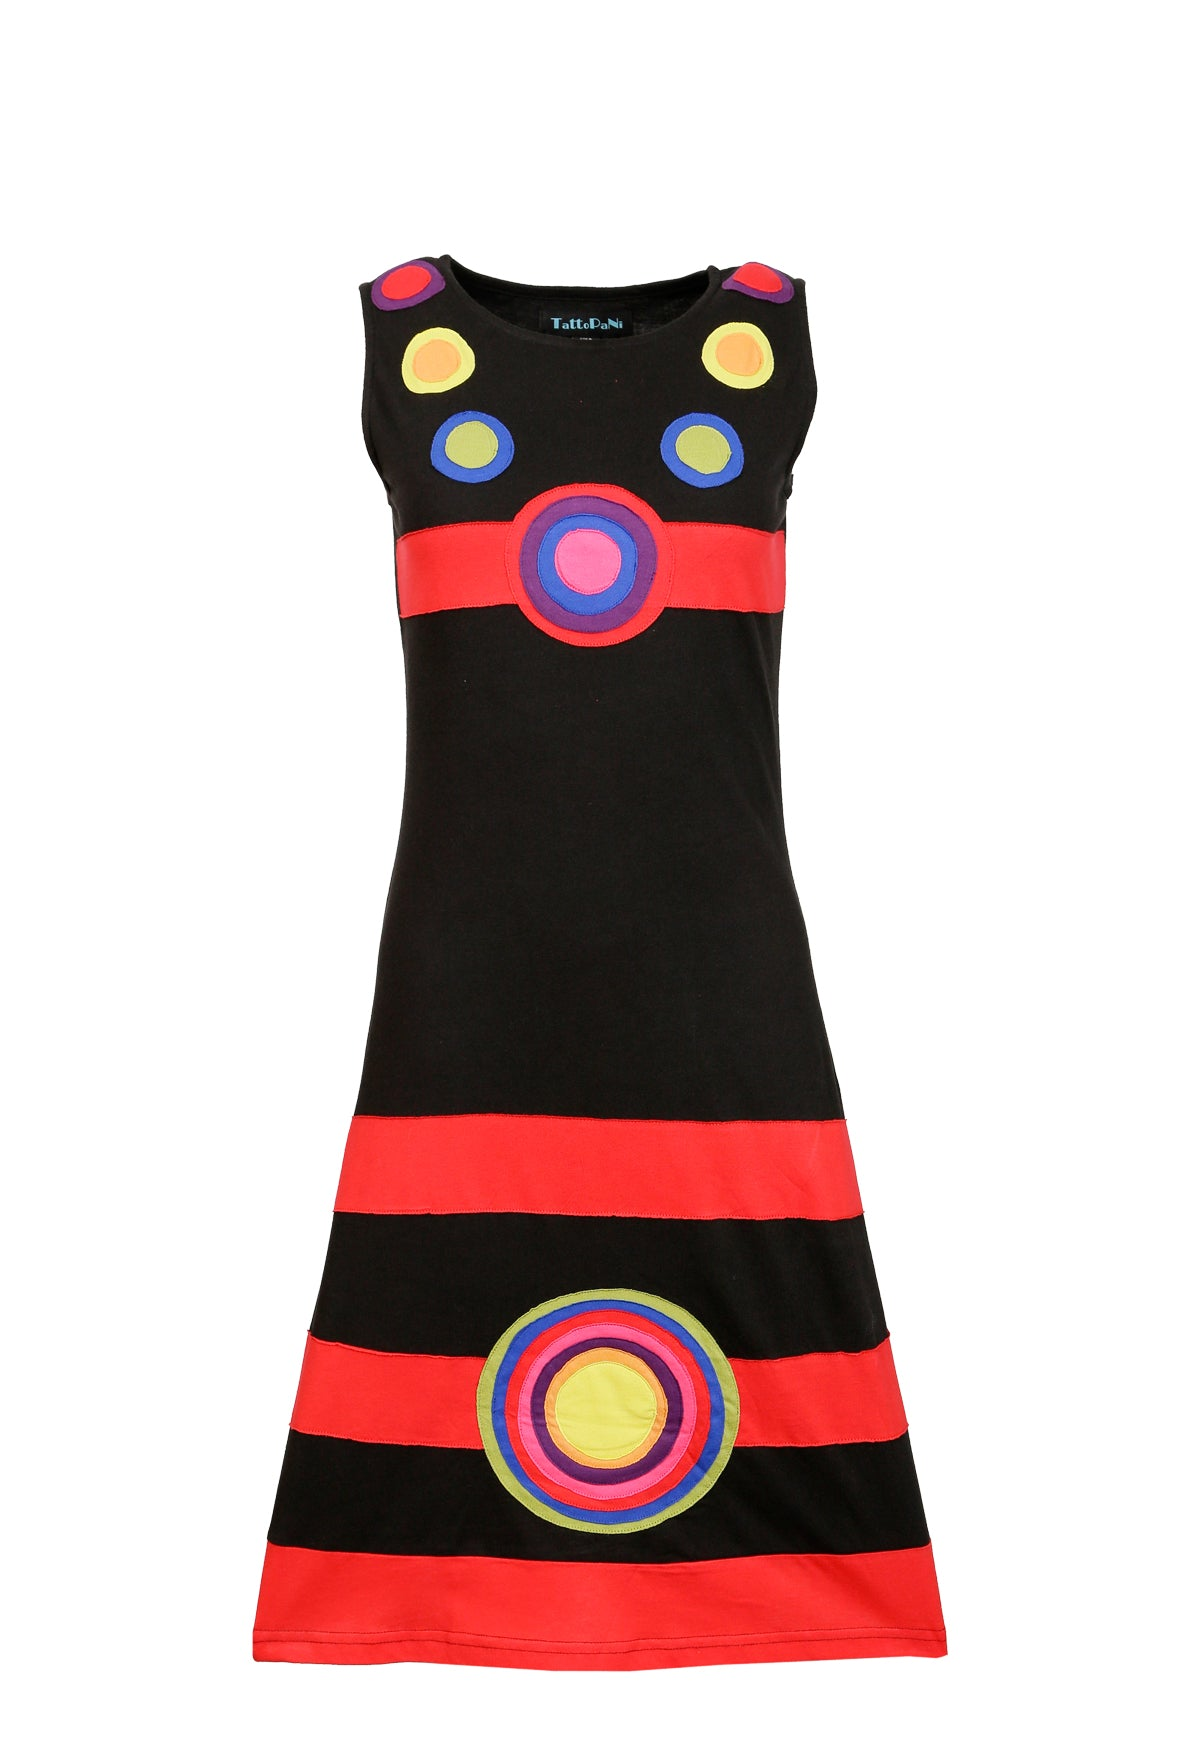 Ladies Multicolored Summer Sleeveless Dress with Patch Design - Craze Trade Limited